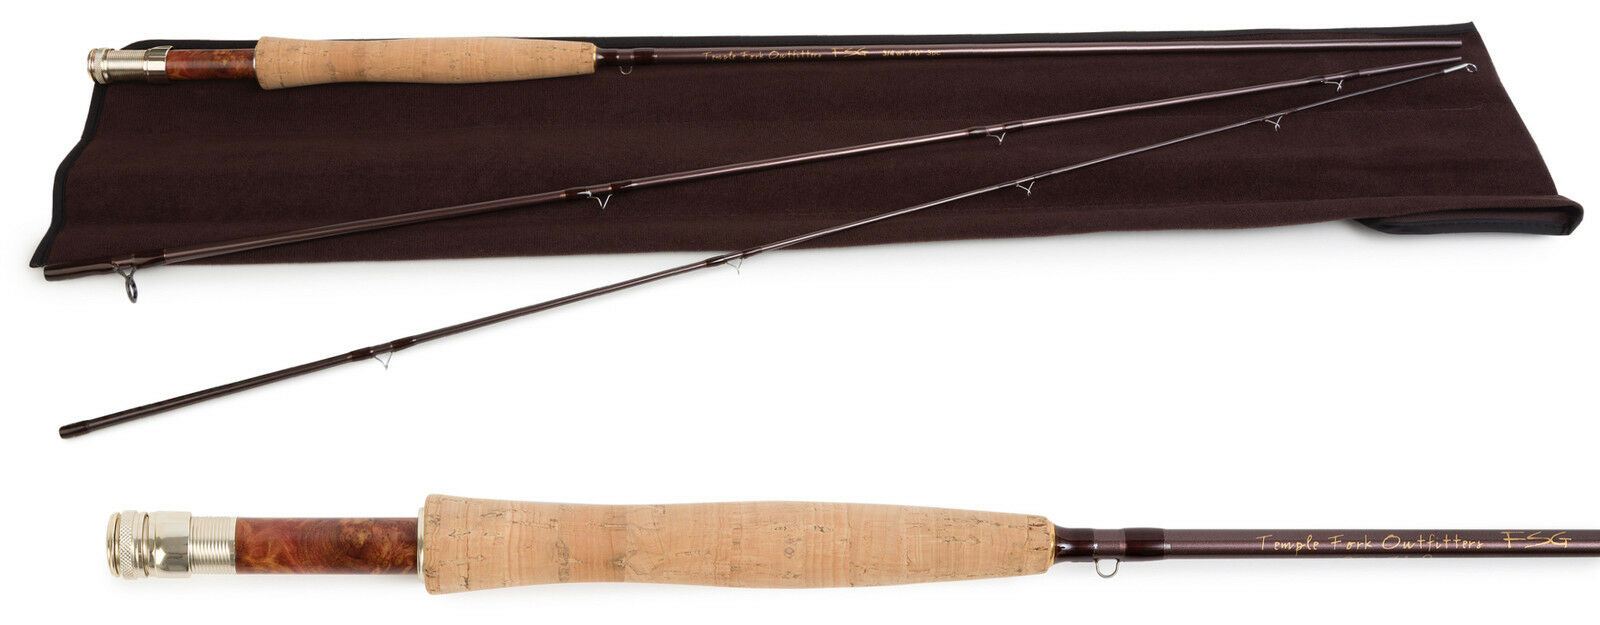 Temple Fork Finesse Glass Fly Rod 3-4 wt. 7'0  3 pc.